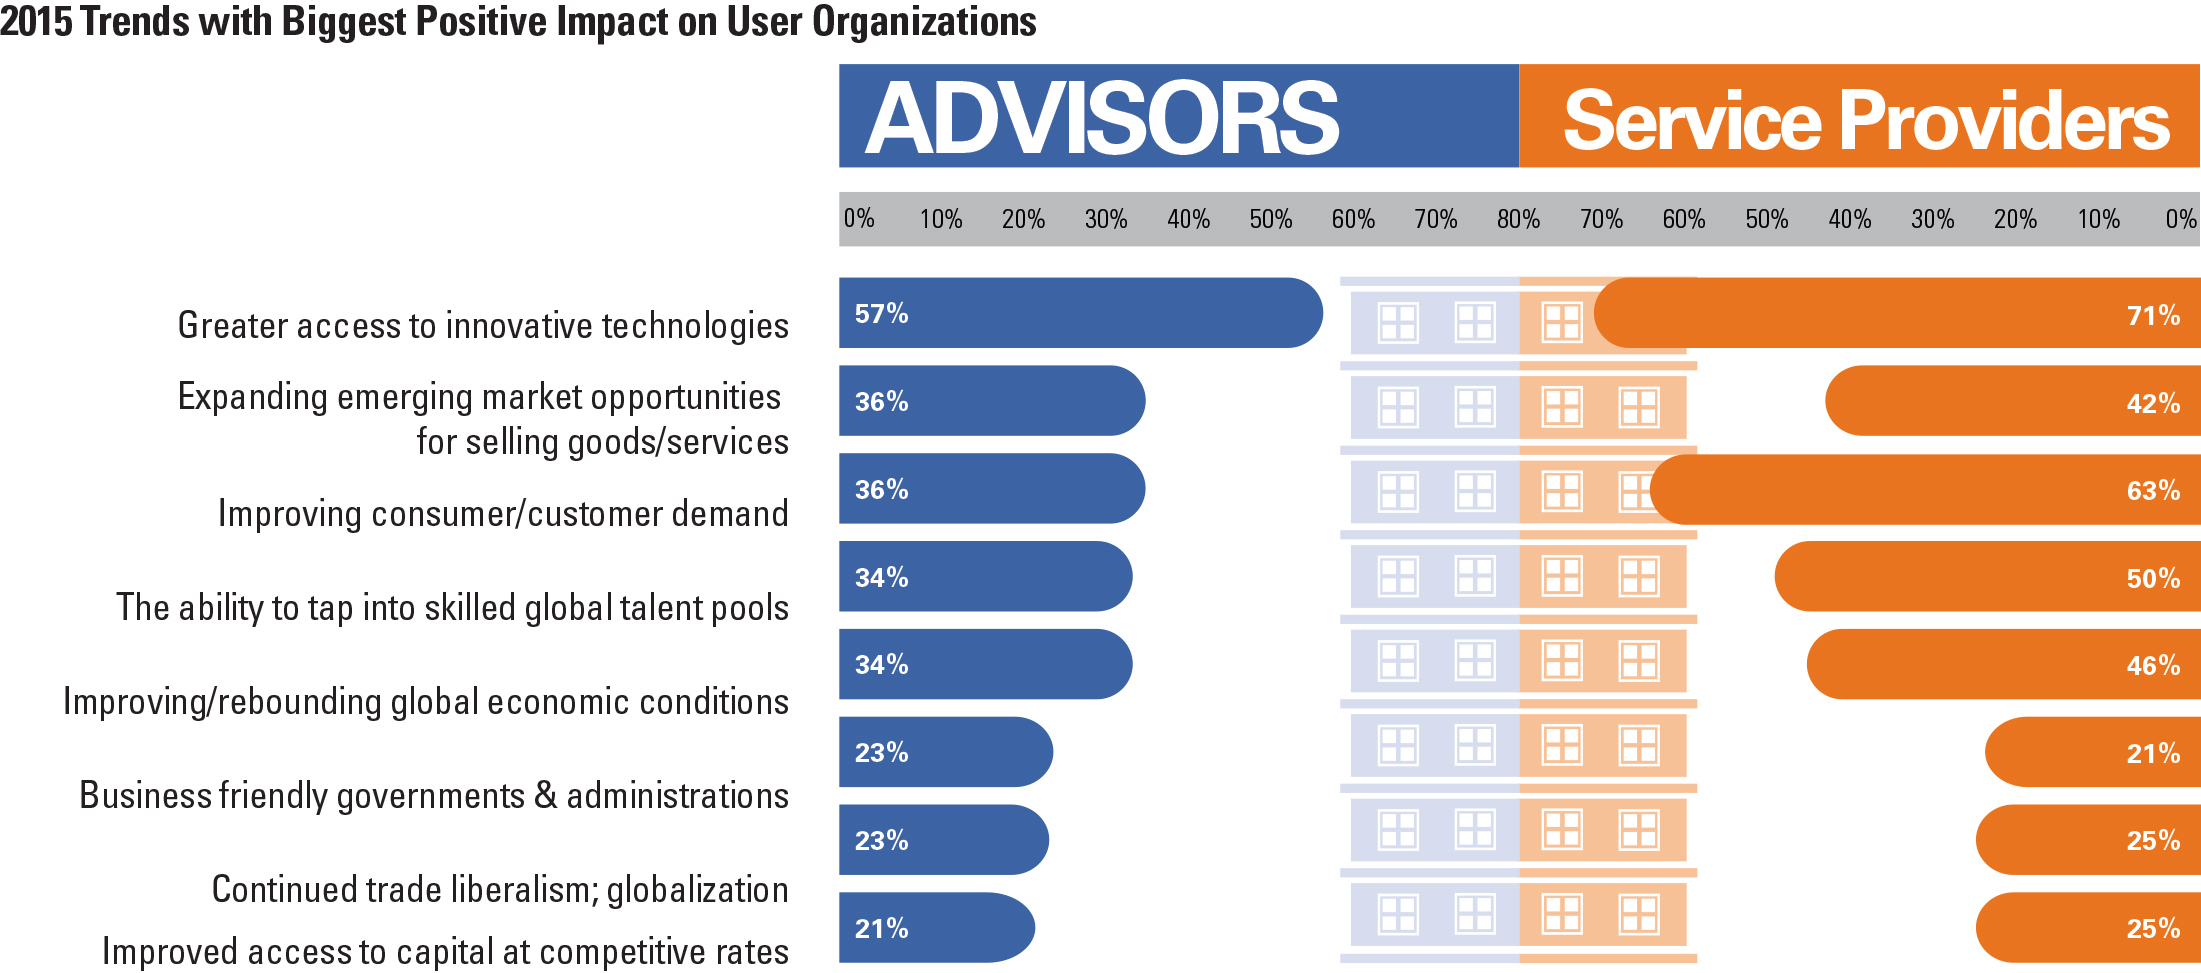 2015 Trends with Biggest Postive Impact on User Organizations